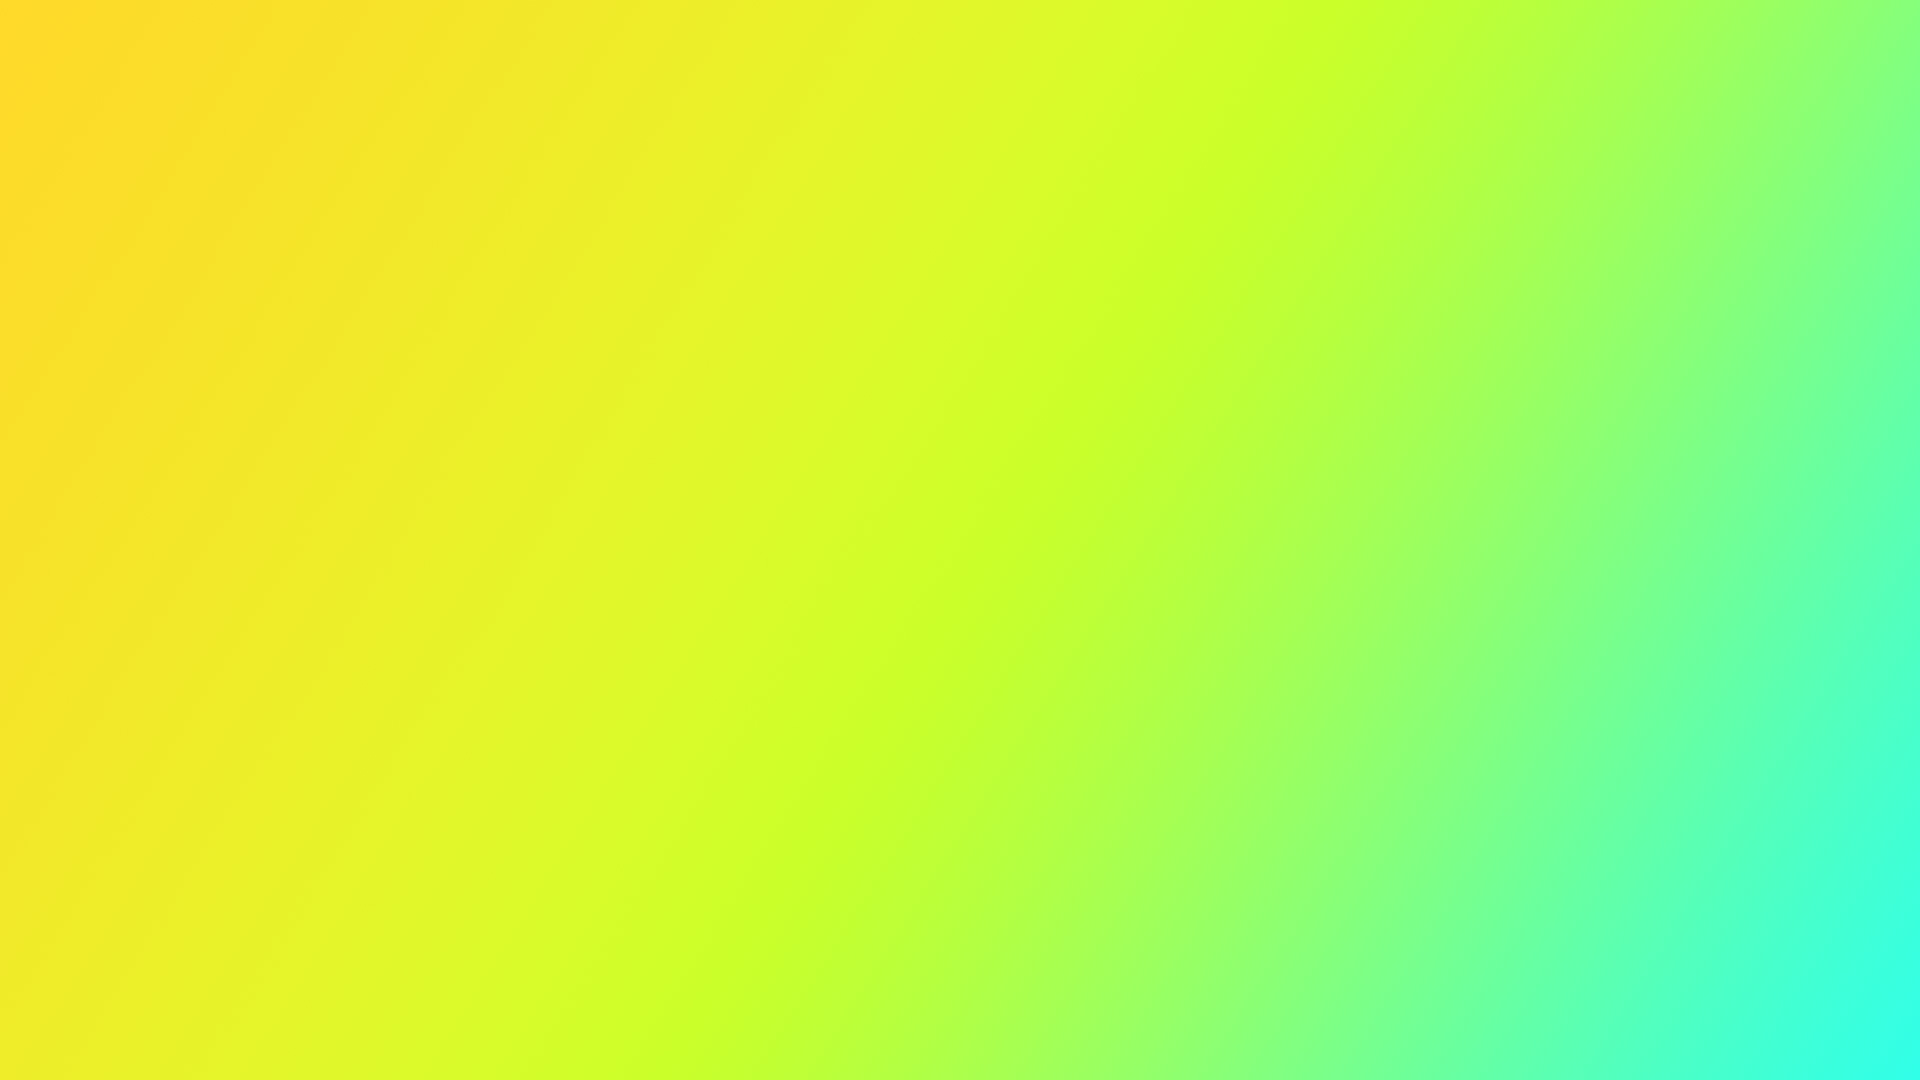 yellow-green-Gradient-Background